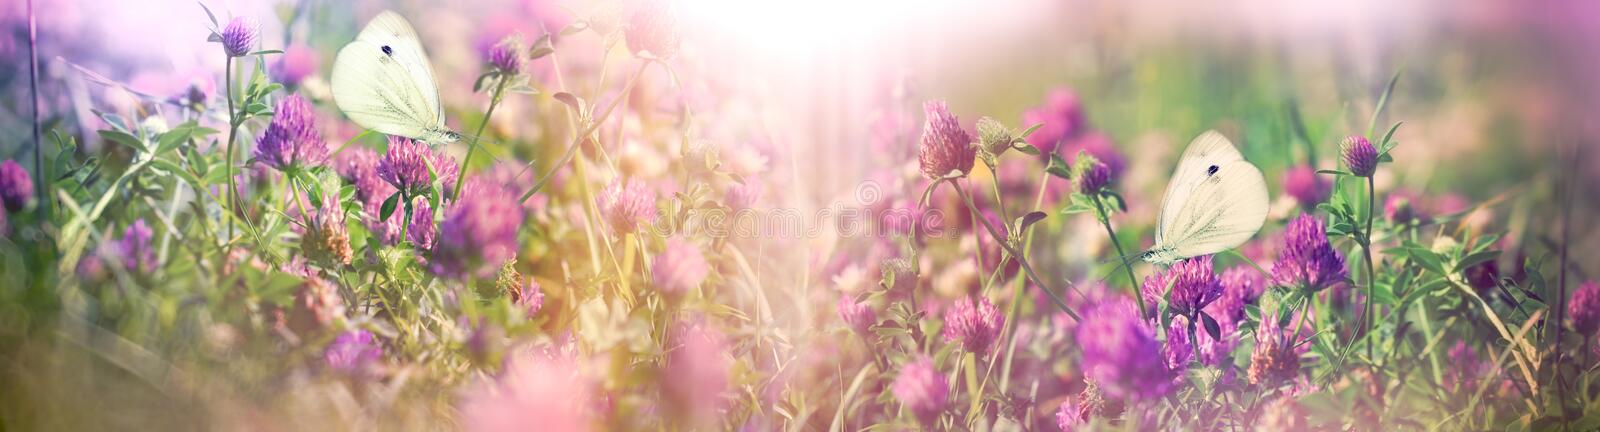 Beautiful nature in spring - white butterflies on flowering clover royalty free stock images